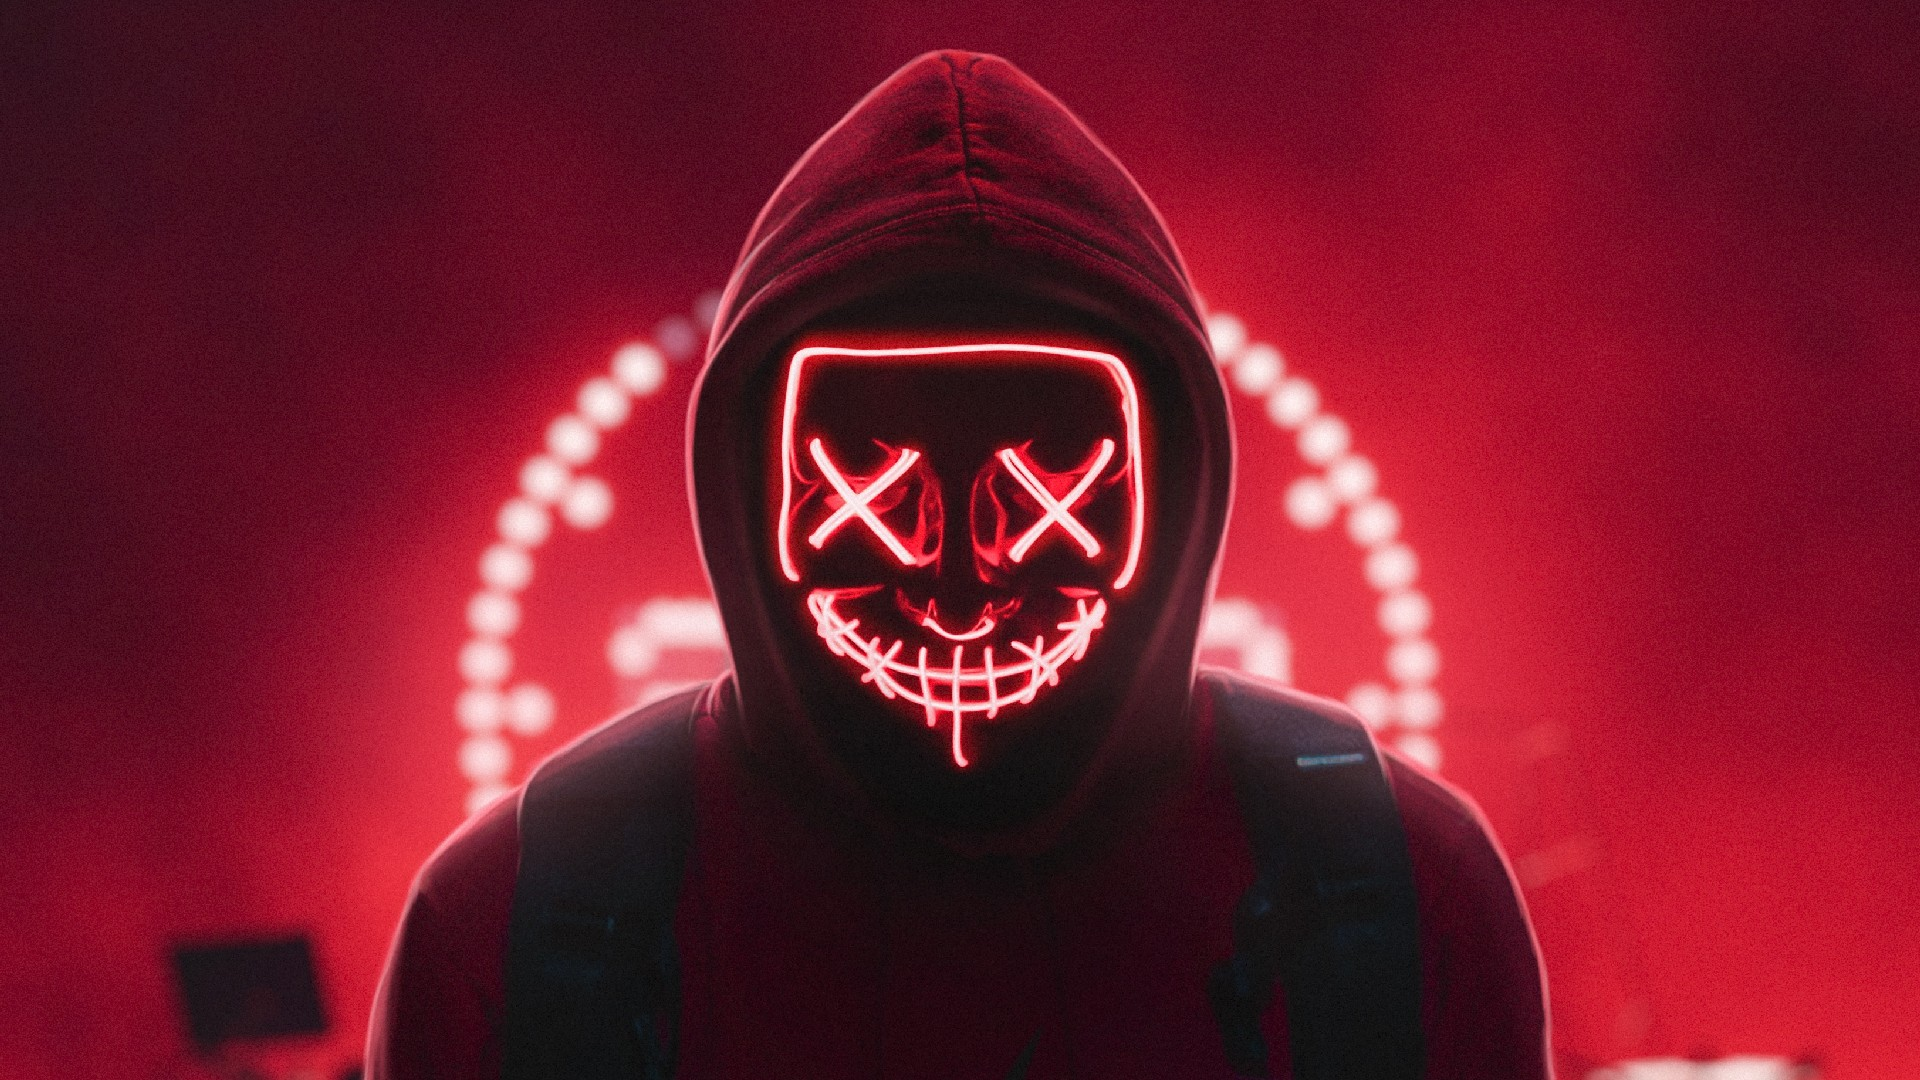 neon red mask wallpaper